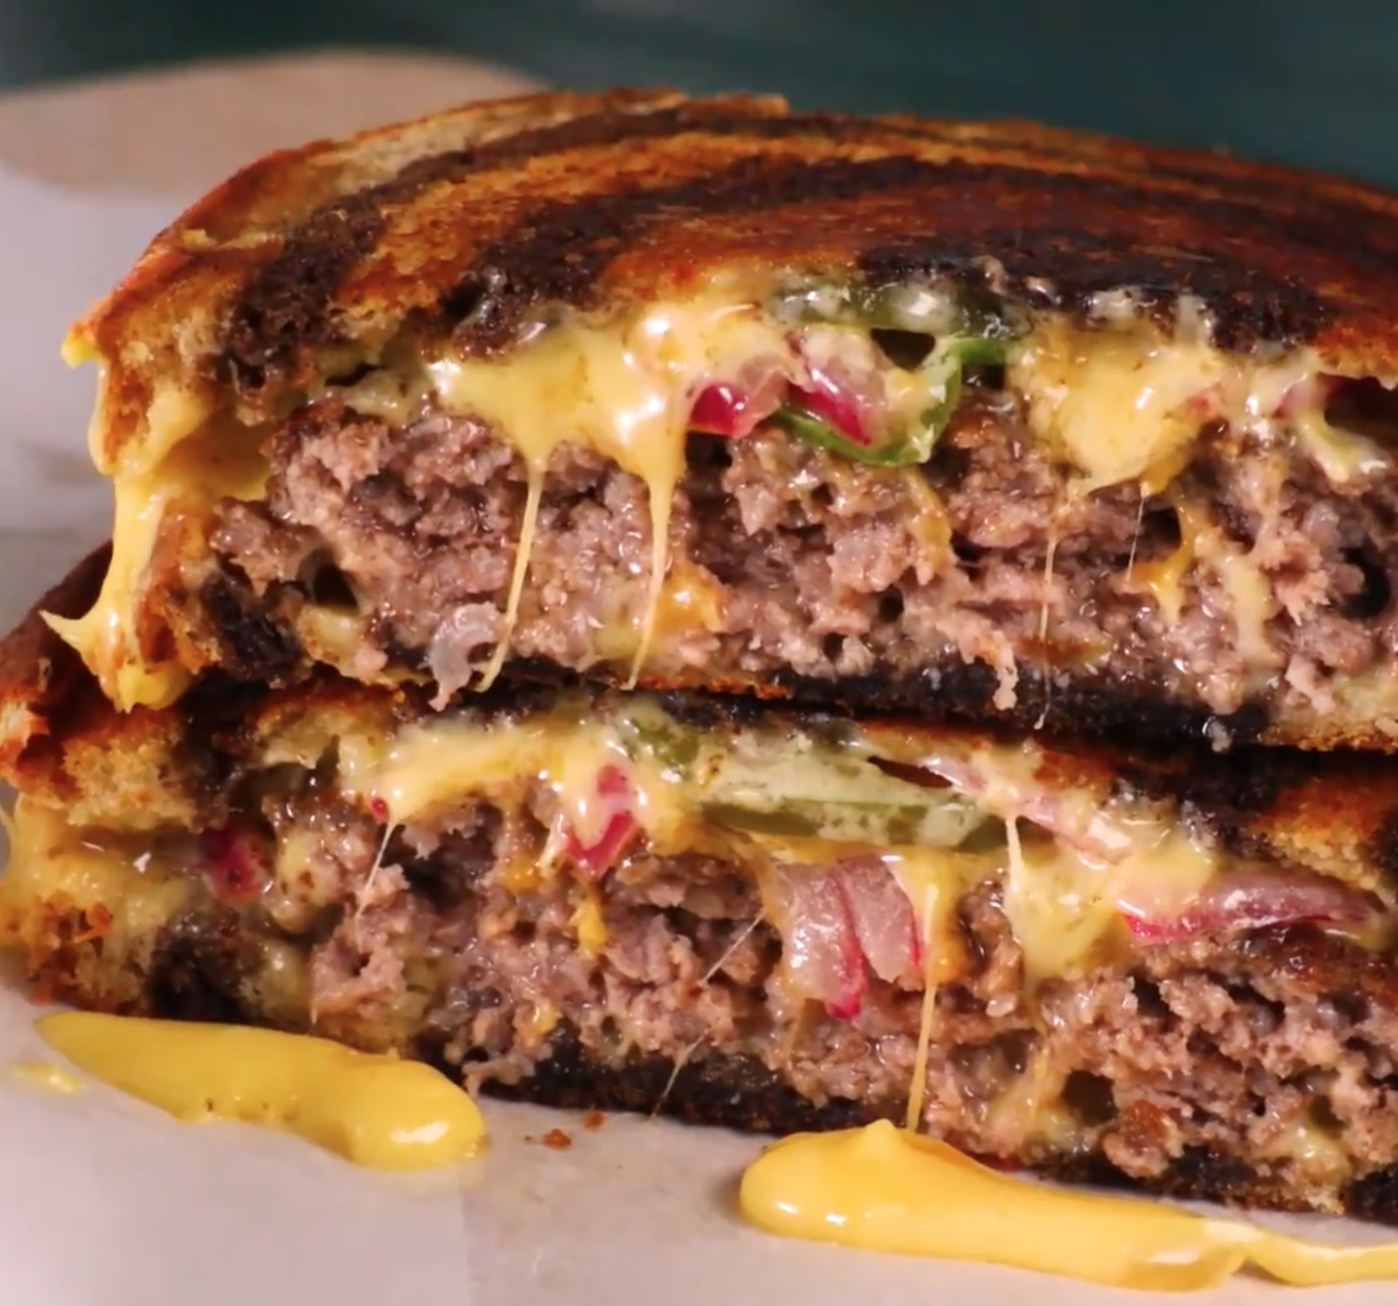 patty melts with pickled onion and jalapeno